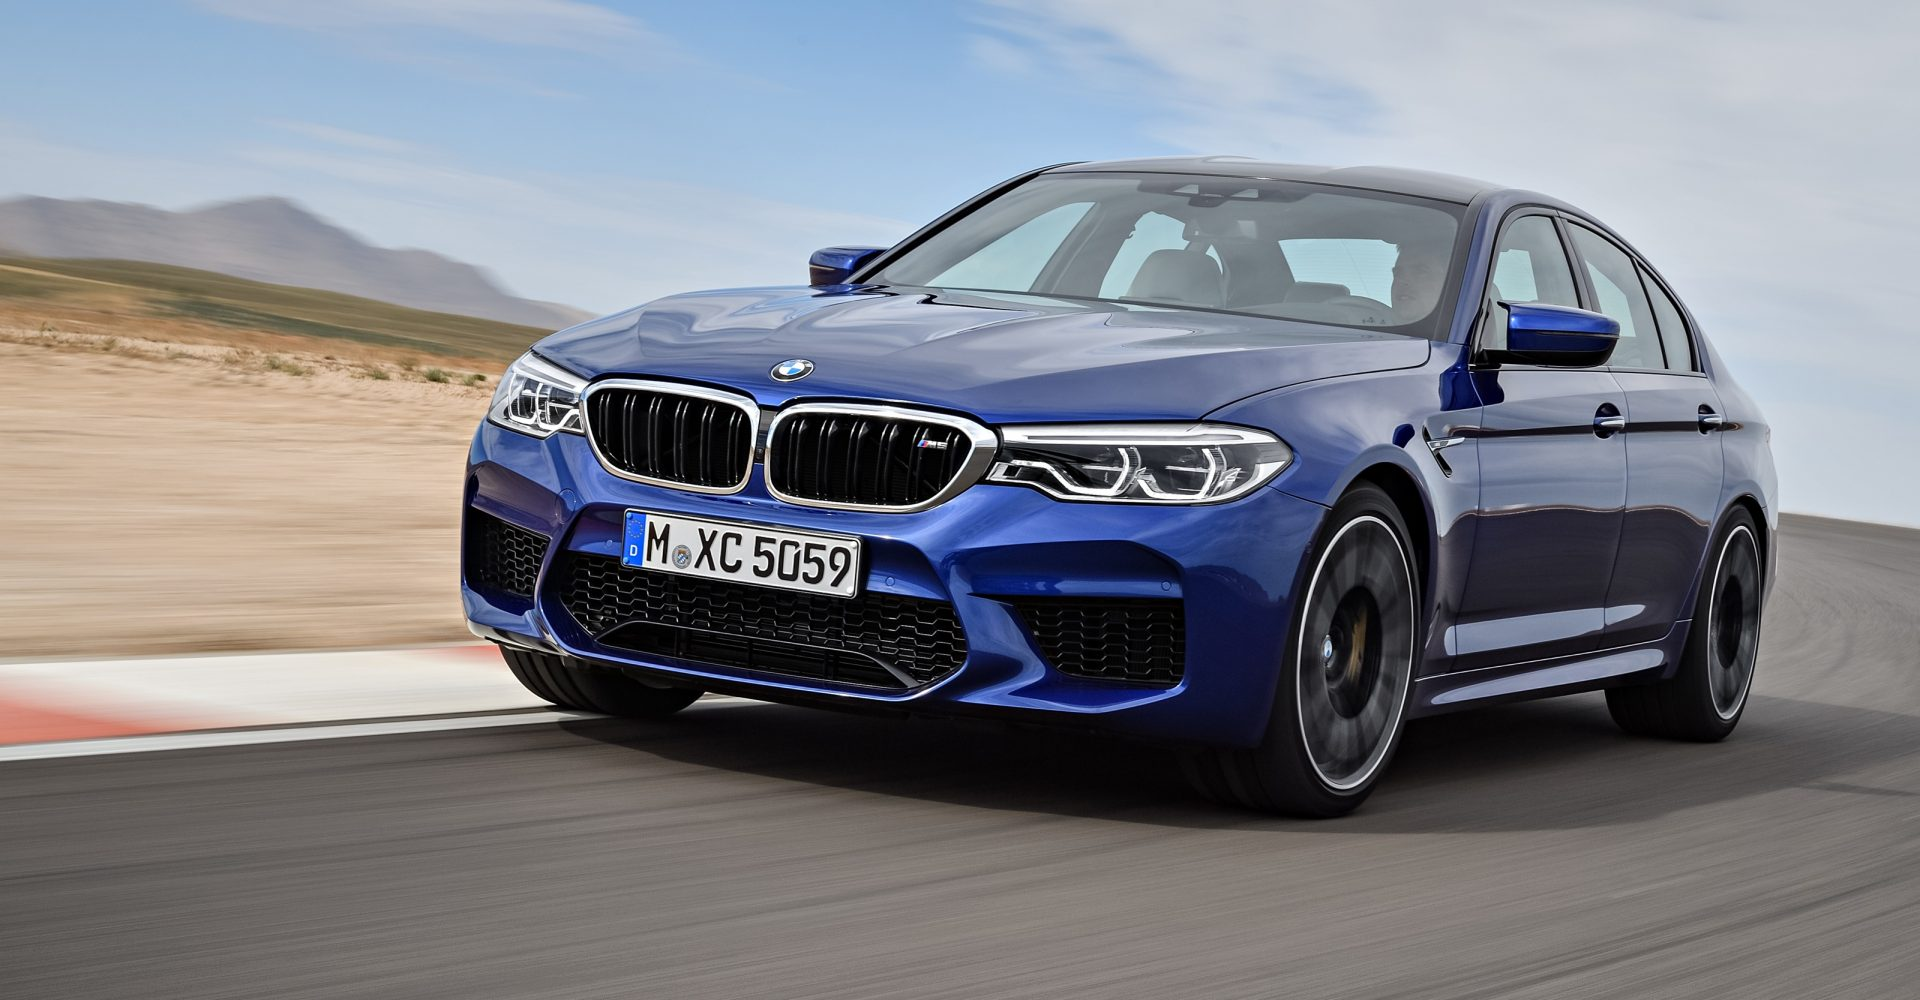 What you need to know about the new BMW M5